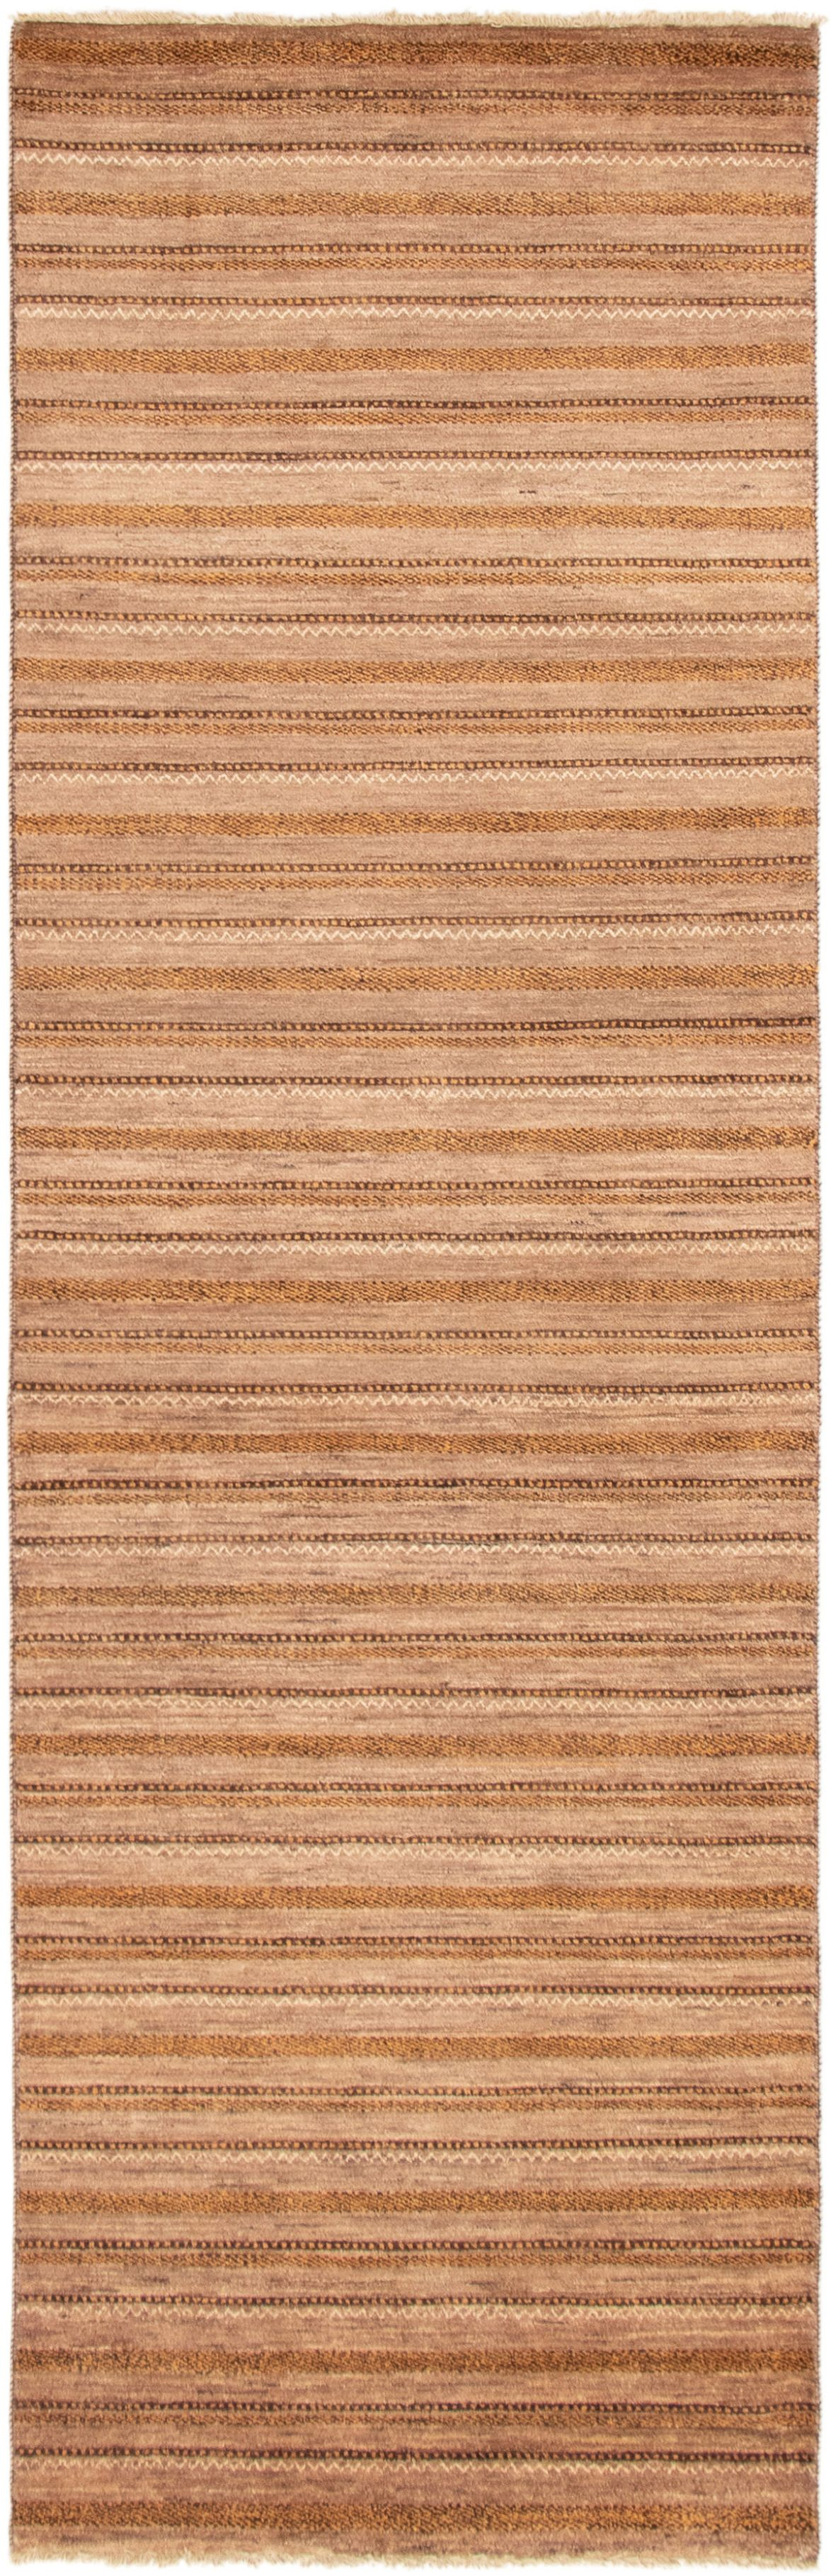 """Hand-knotted Finest Ziegler Chobi Brown Wool Rug 3'2"""" x 10'2"""" Size: 3'2"""" x 10'2"""""""